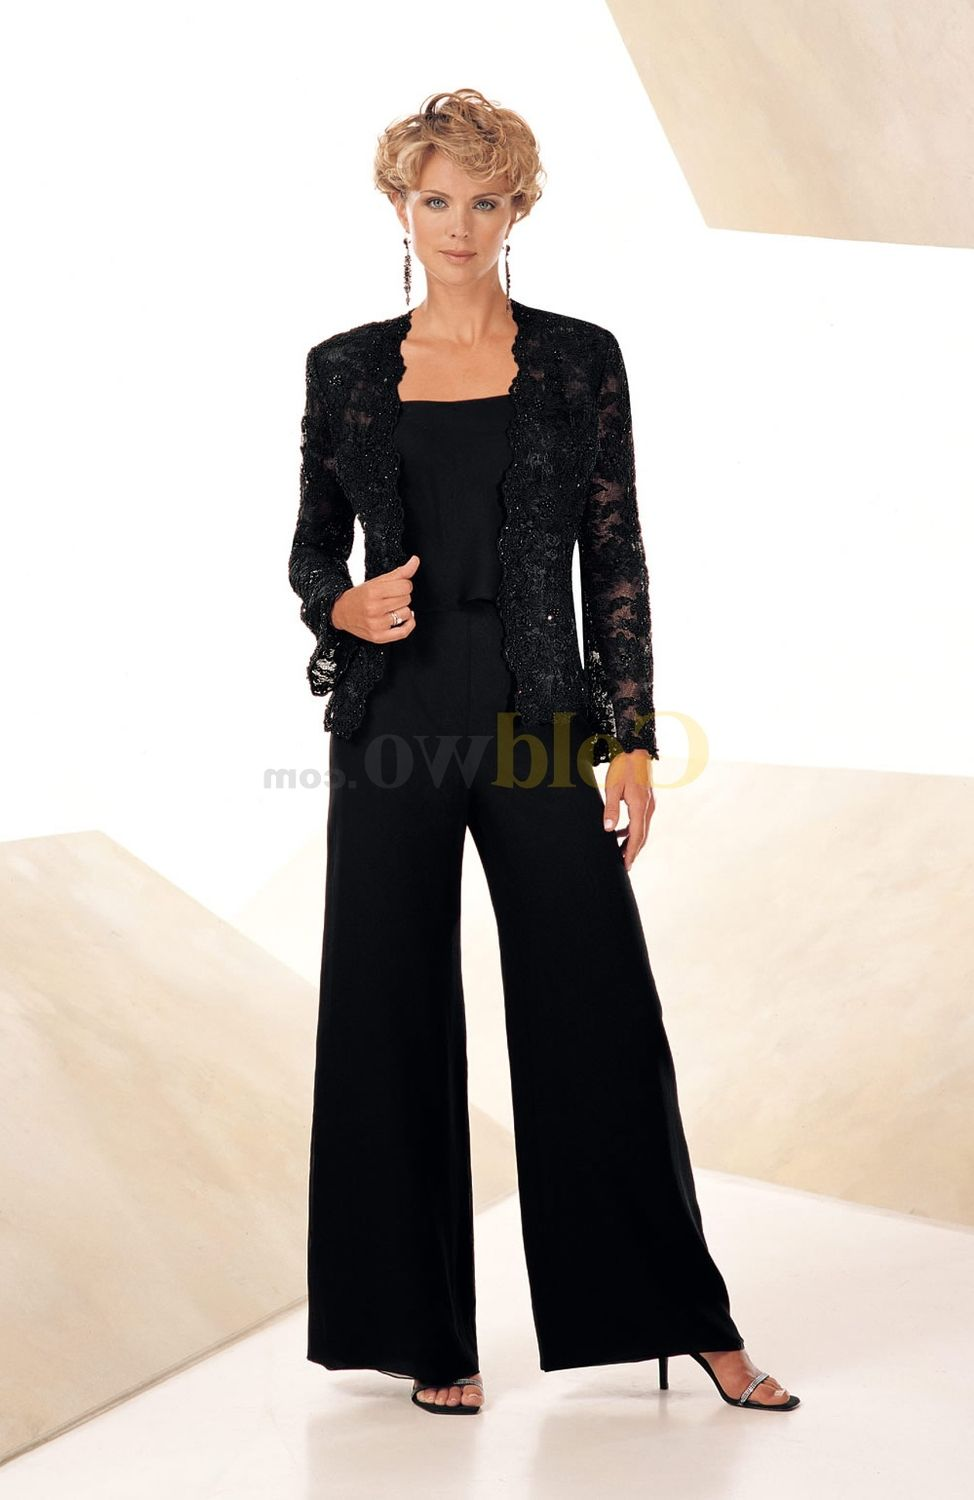 black pant suit for wedding  wedding ideas